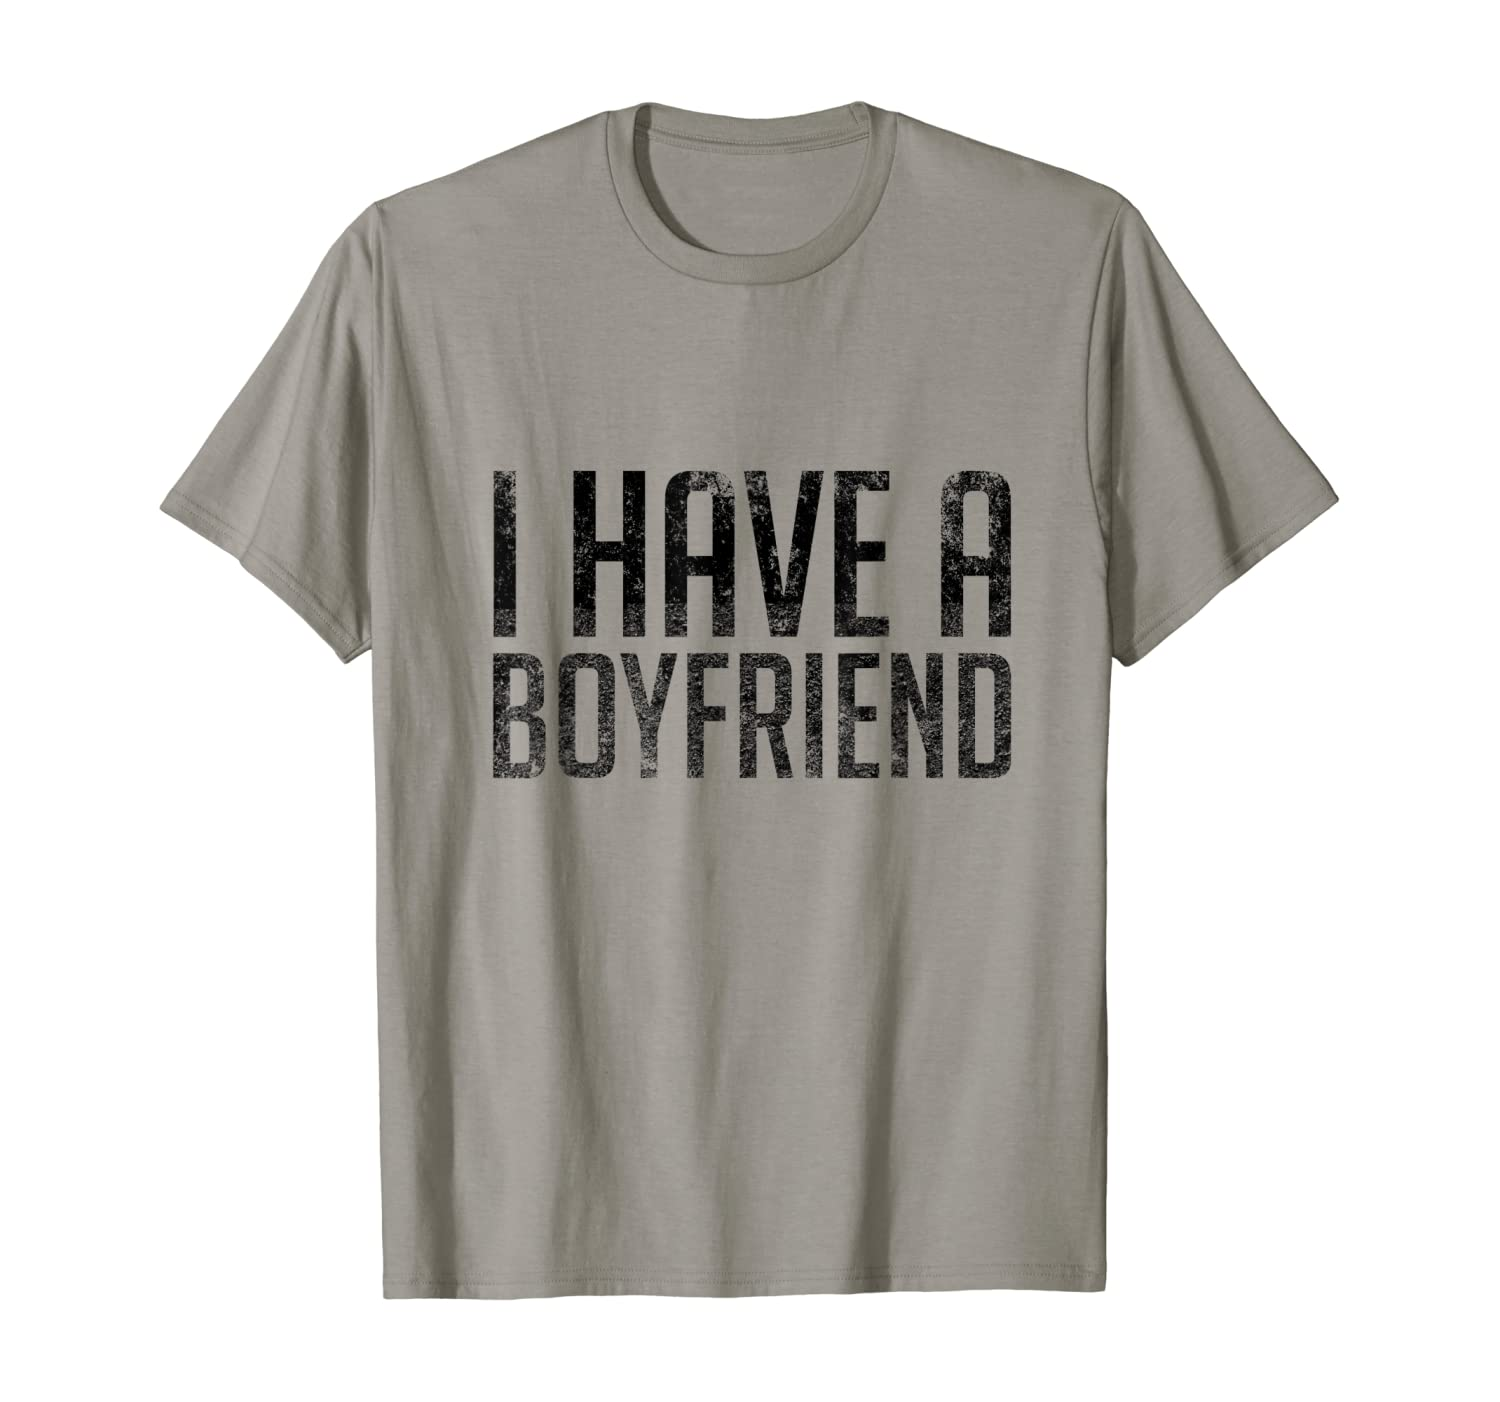 How to talk to girl who has a boyfriend